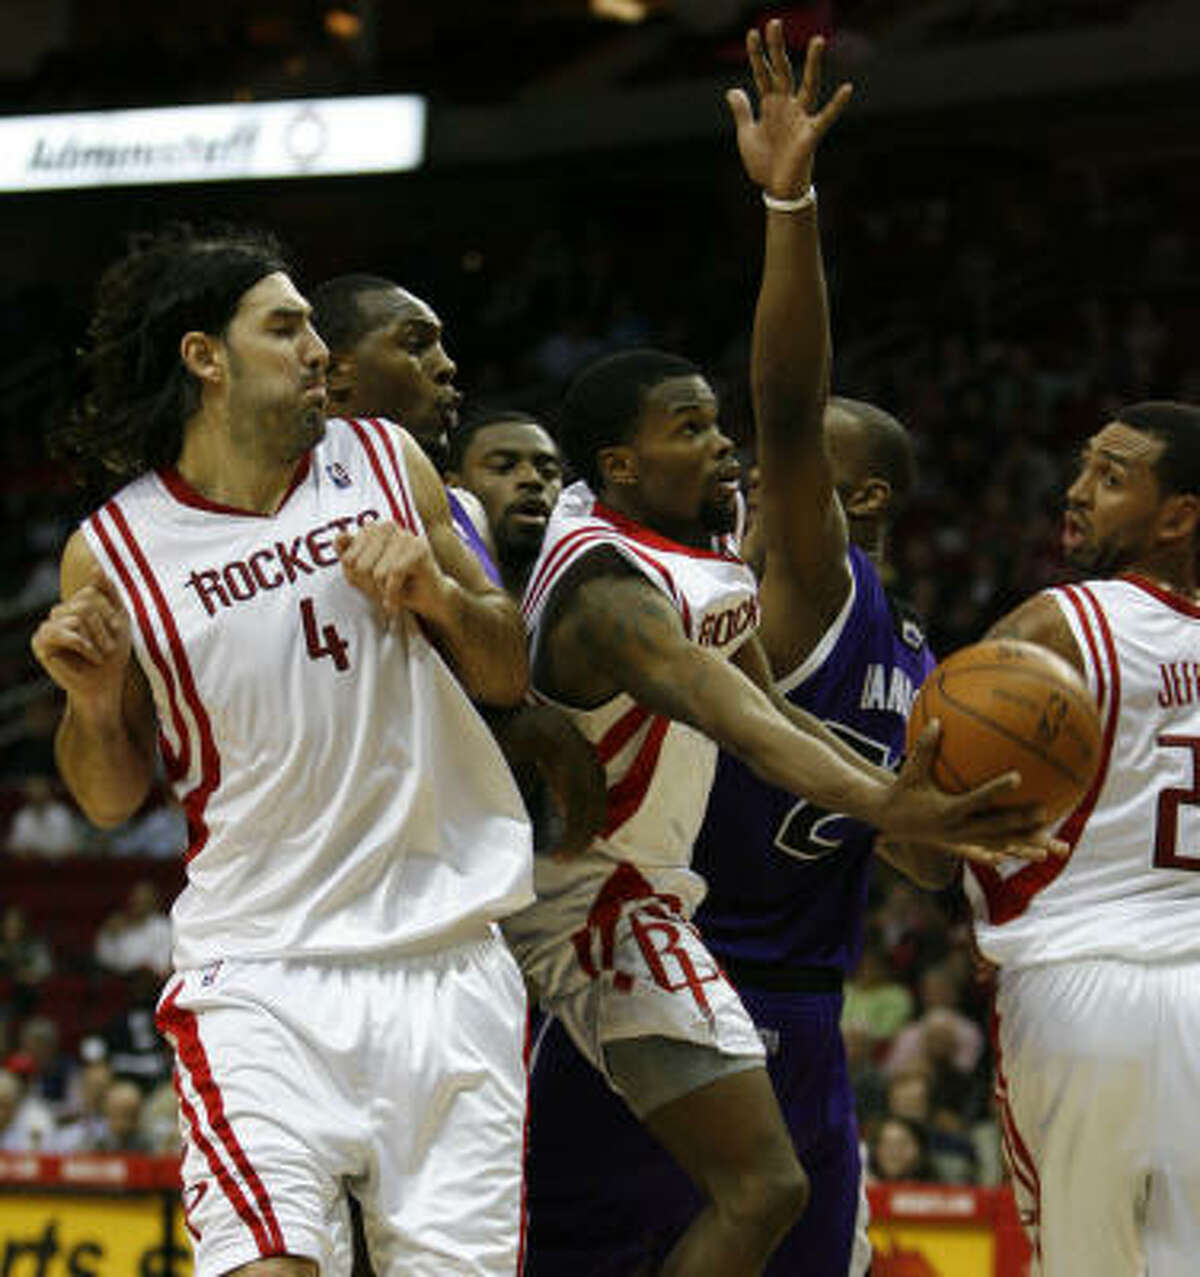 Aaron Brooks tries to squeeze through the crowd under the basket during the Rockets' loss to Sacramento.